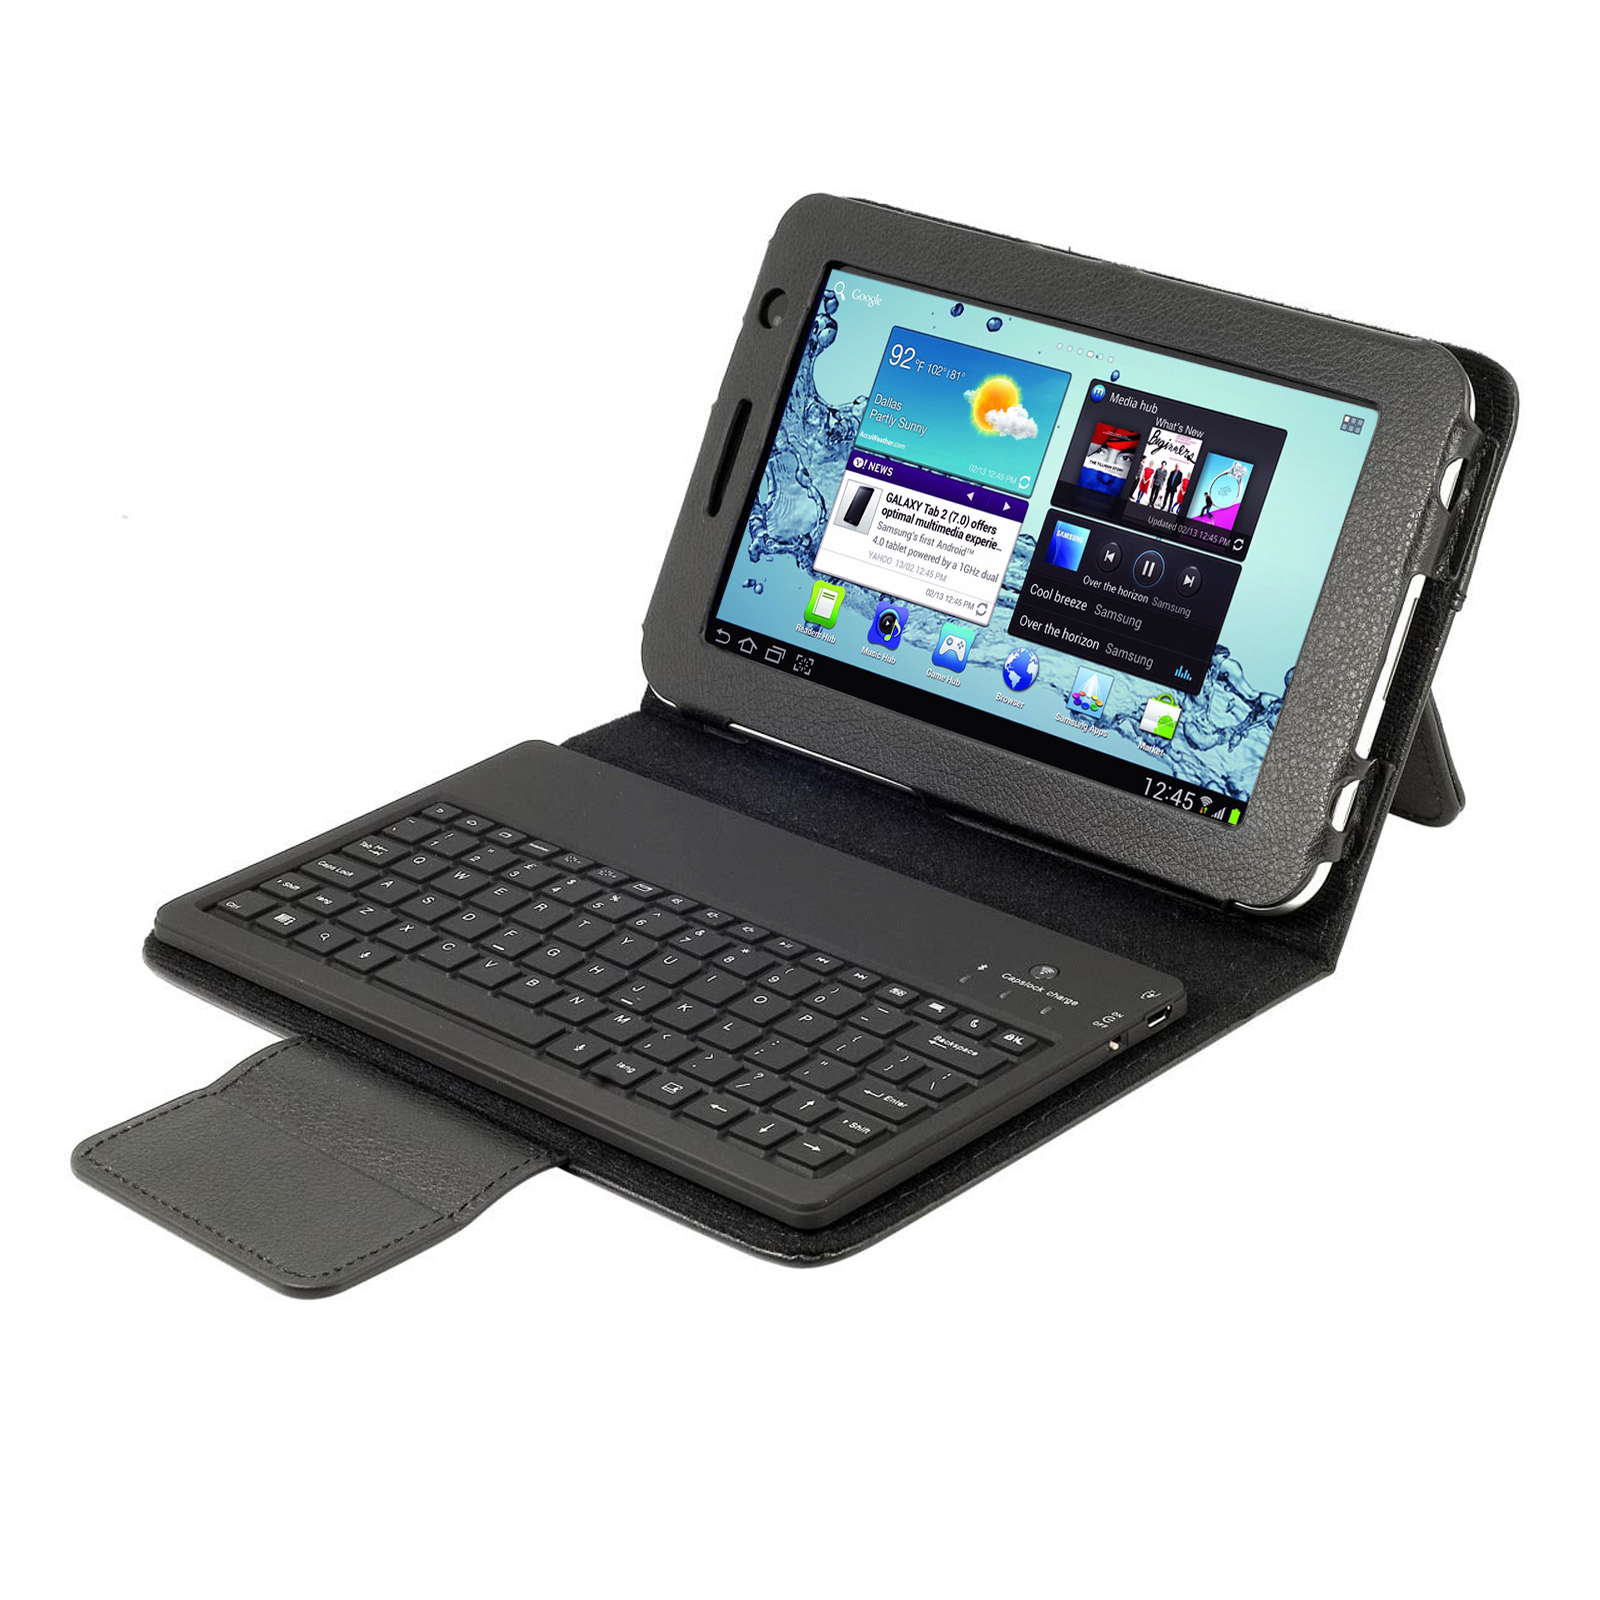 "Bluetooth Keyboard Folio for Samsung Galaxy Tab 2 7.0"" Tablet (87646)"